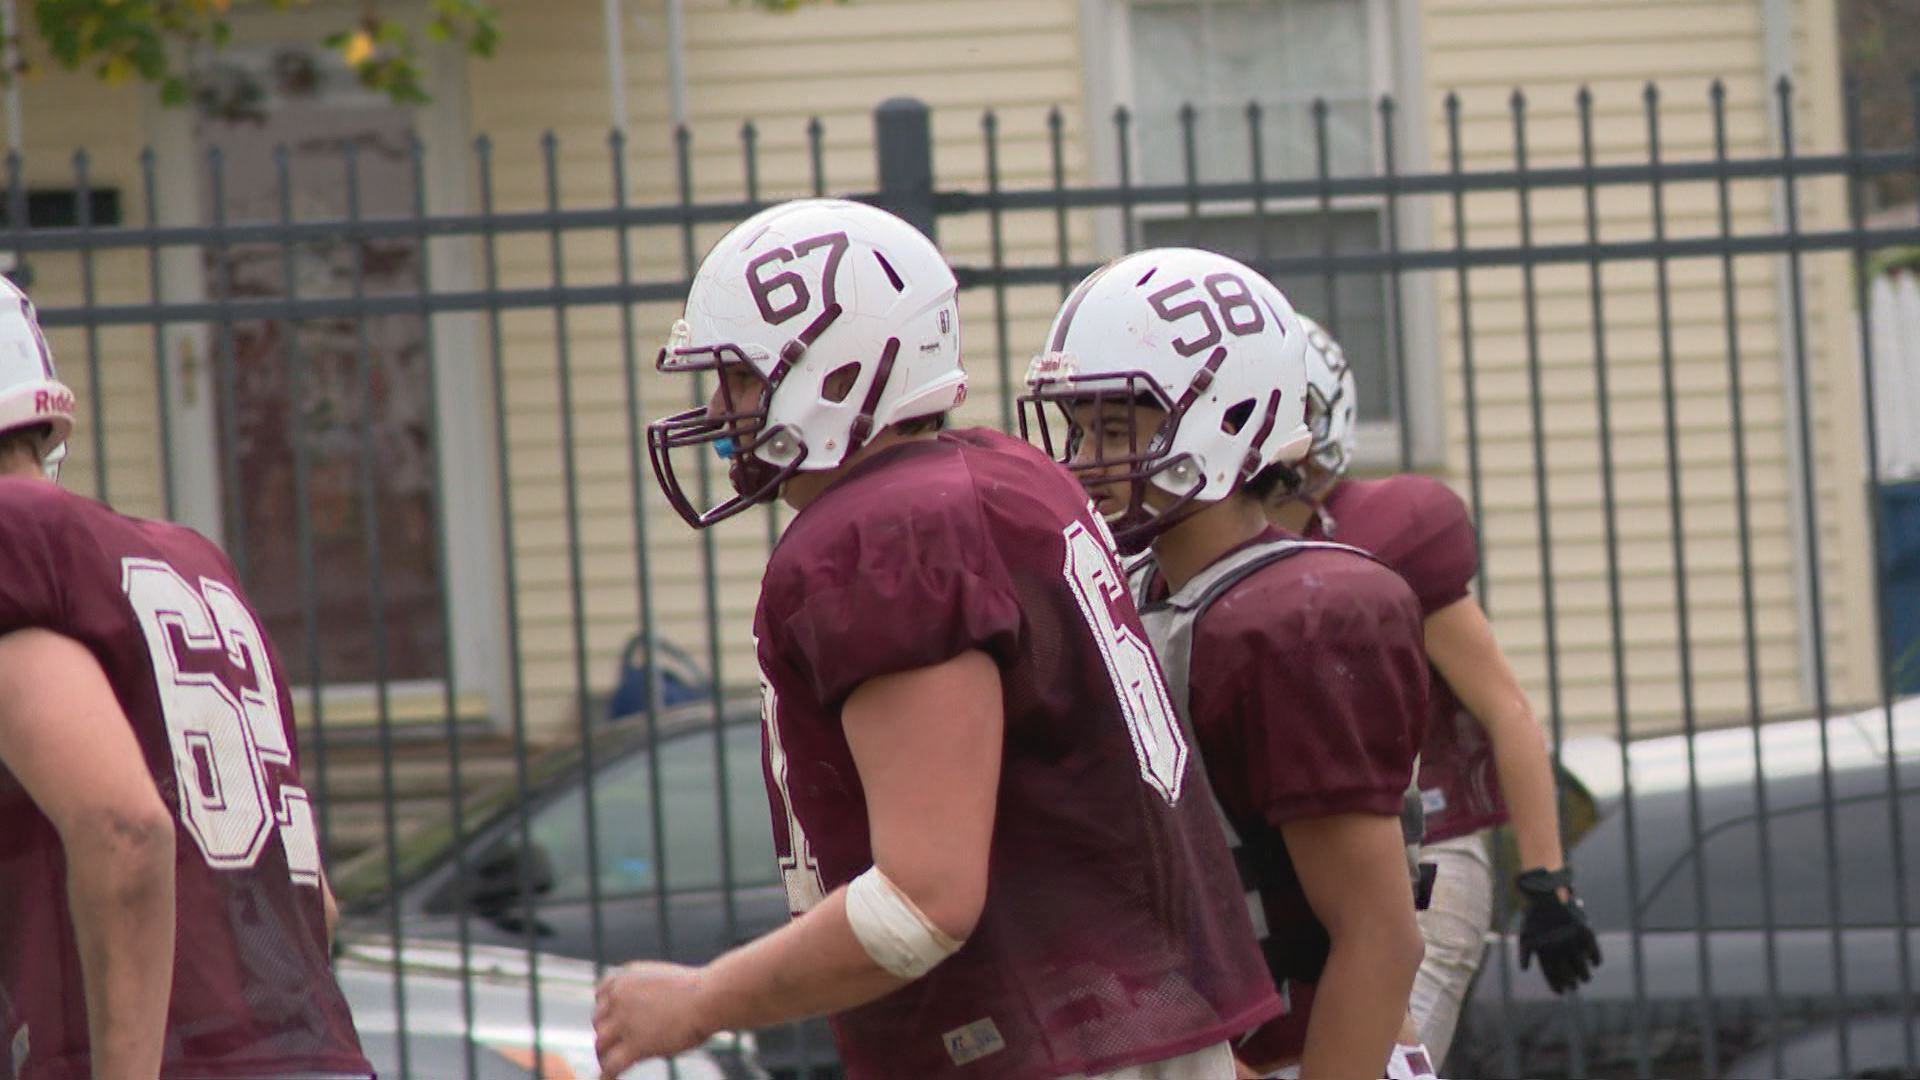 Faulkner is a force up front for the Mishawaka Cavemen // WSBT 22 Photo